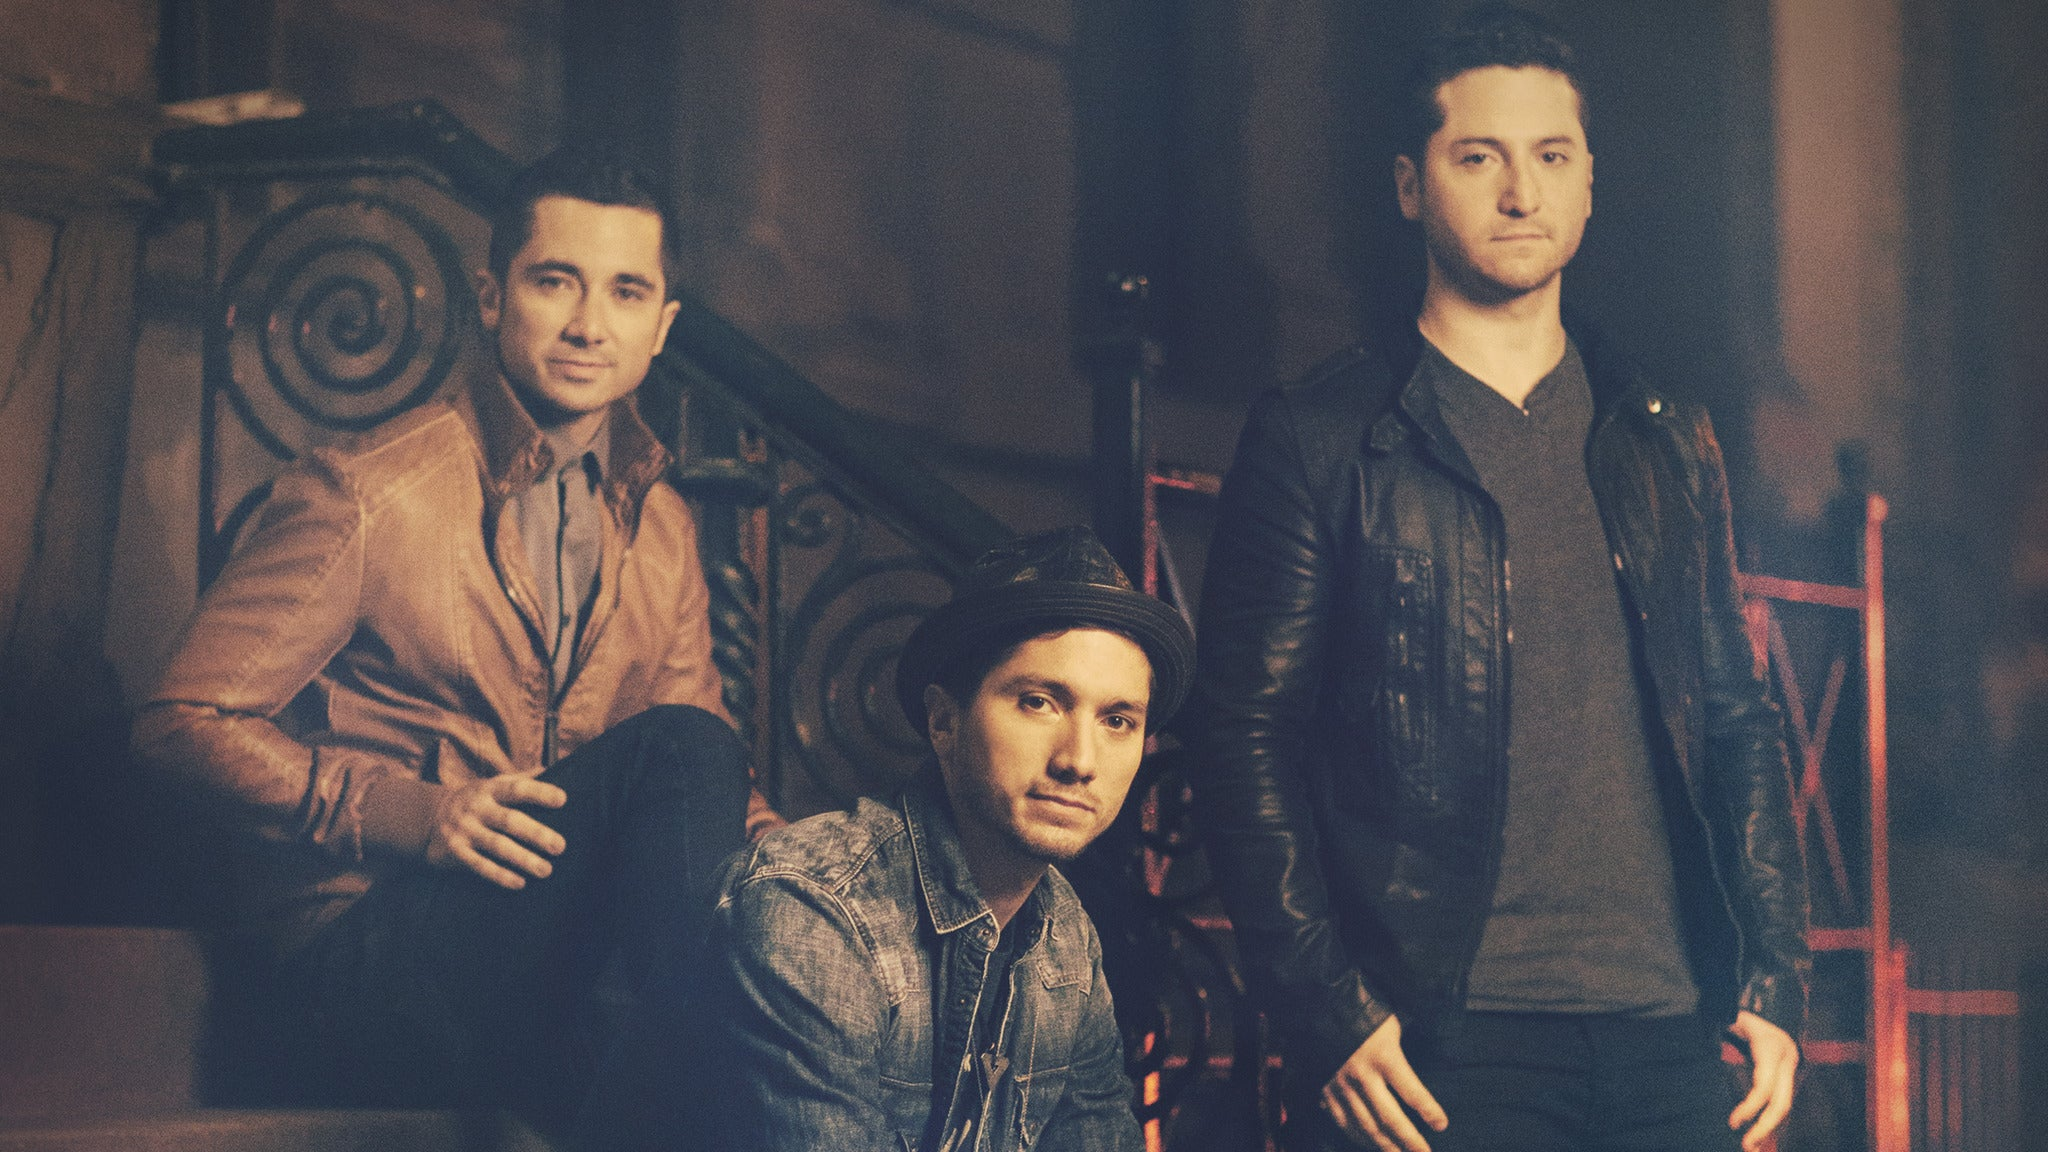 Boyce Avenue at Jannus Live